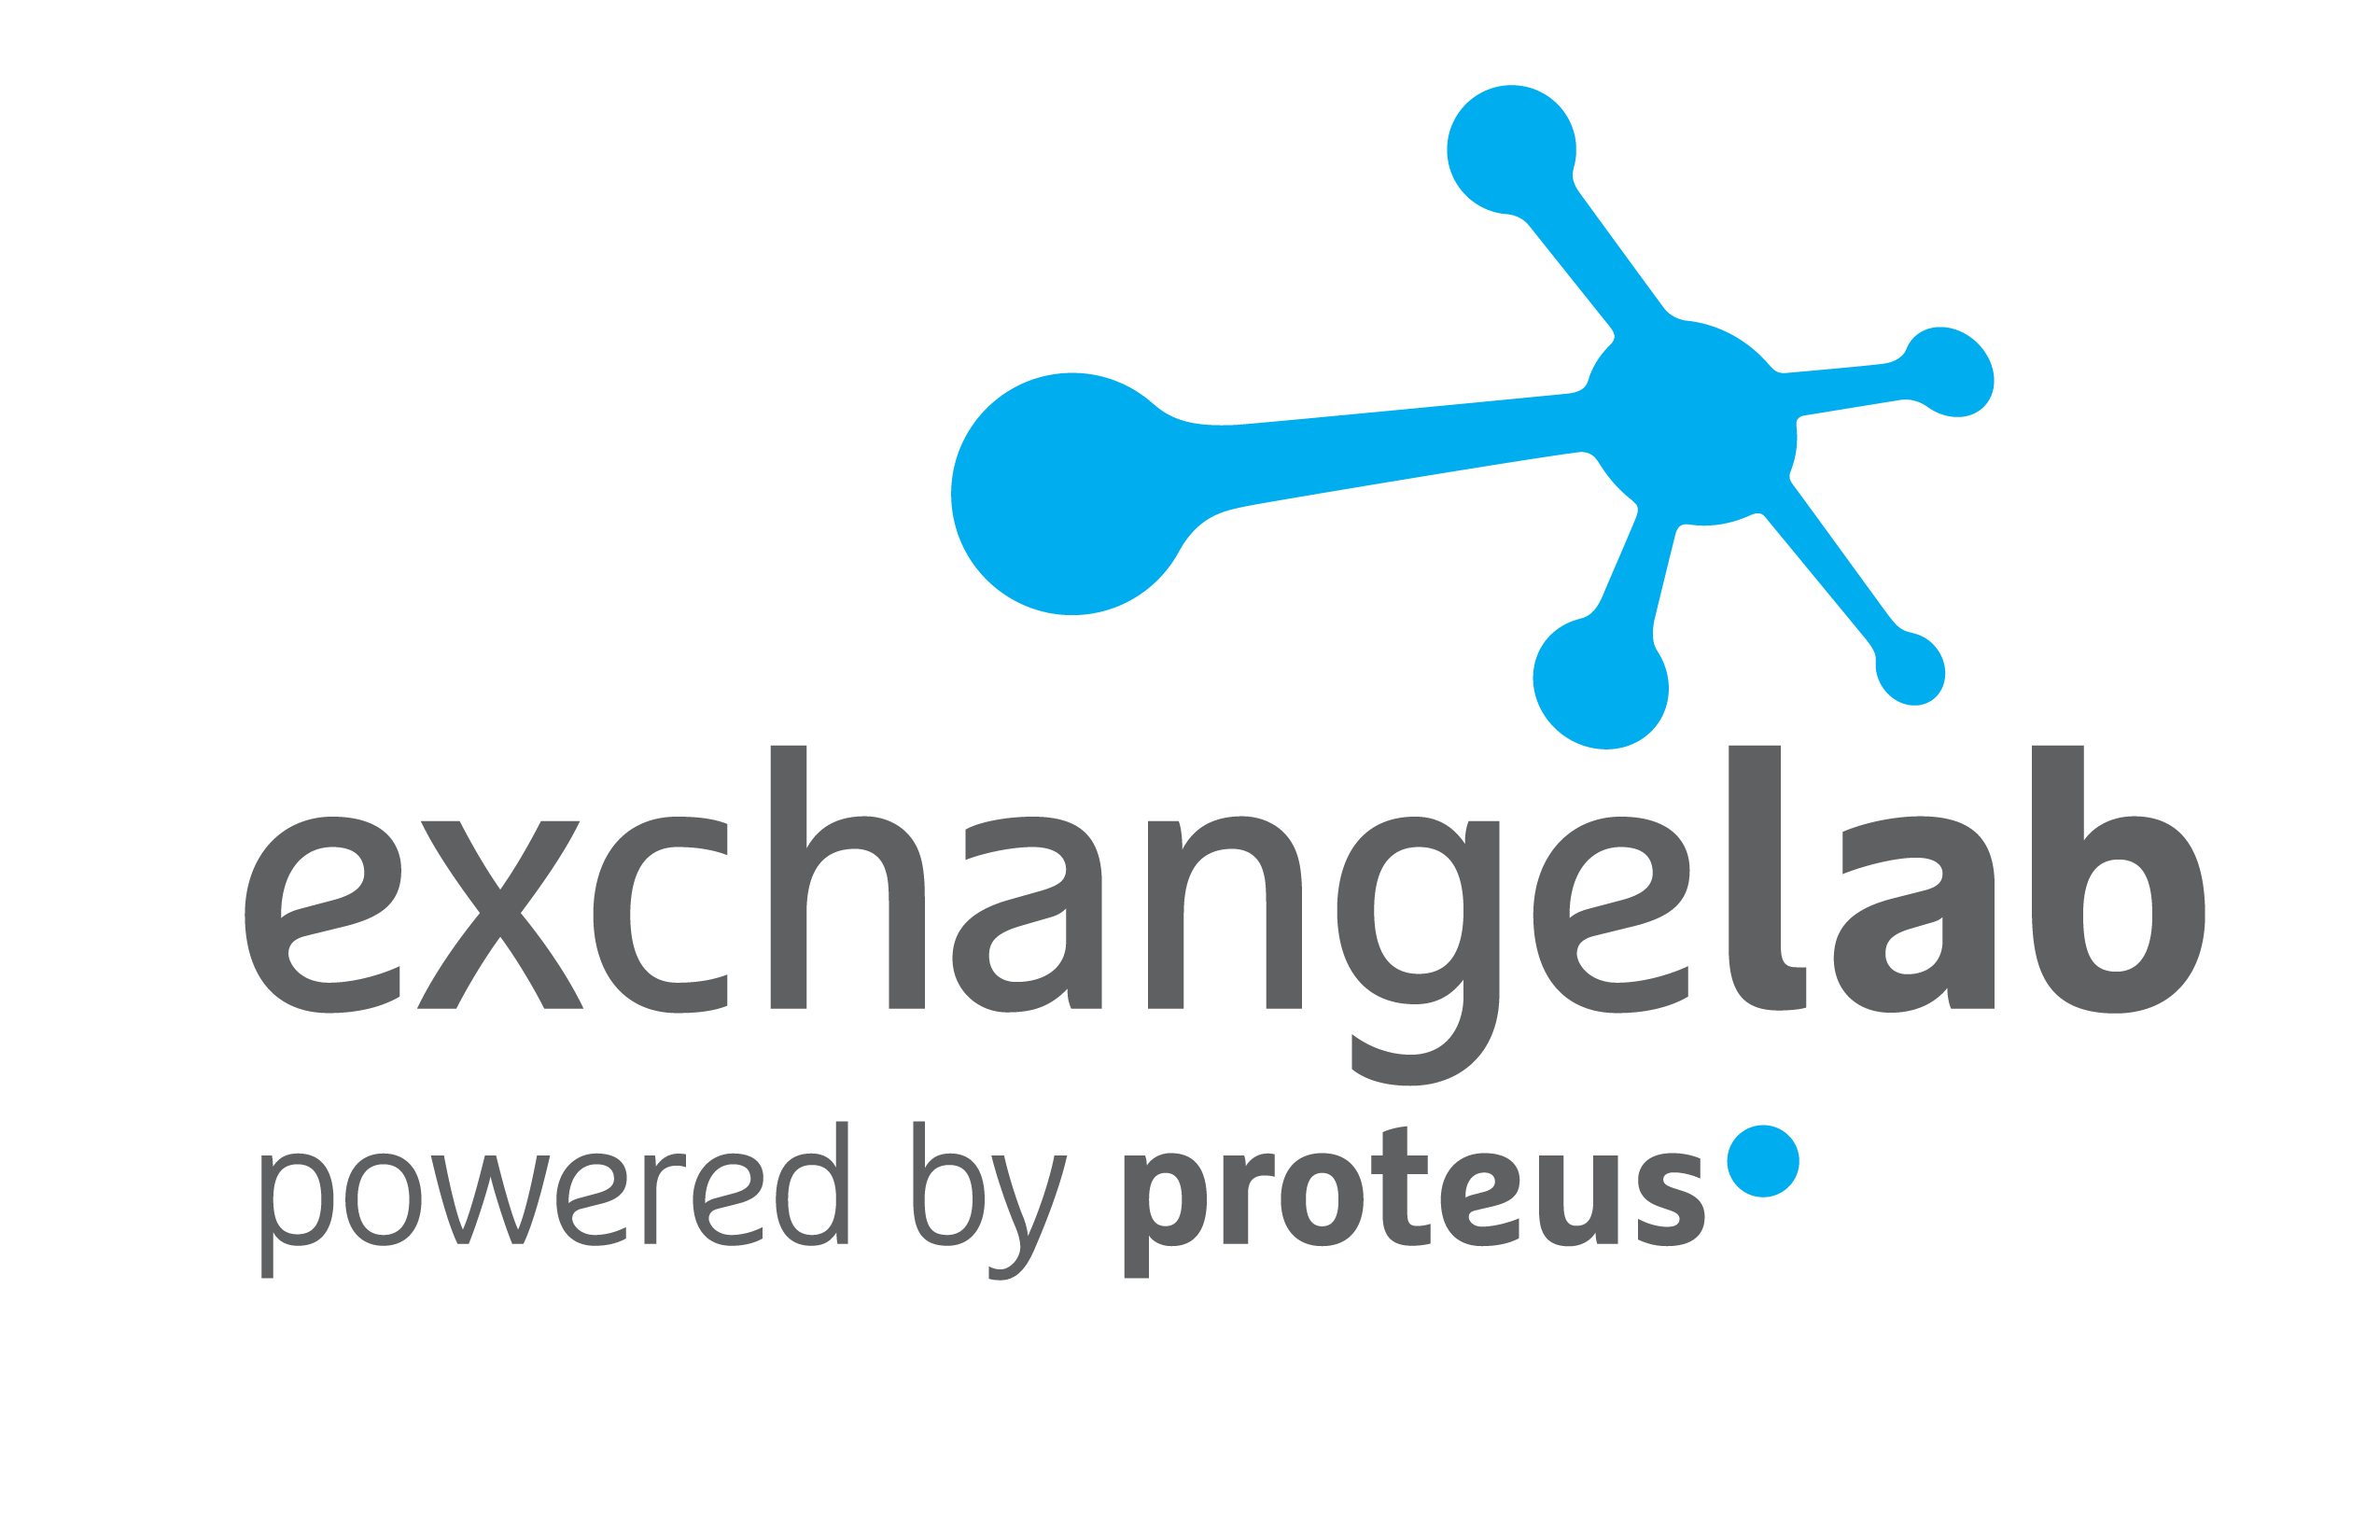 exchange lab to launch proteus tech at ad week marketing